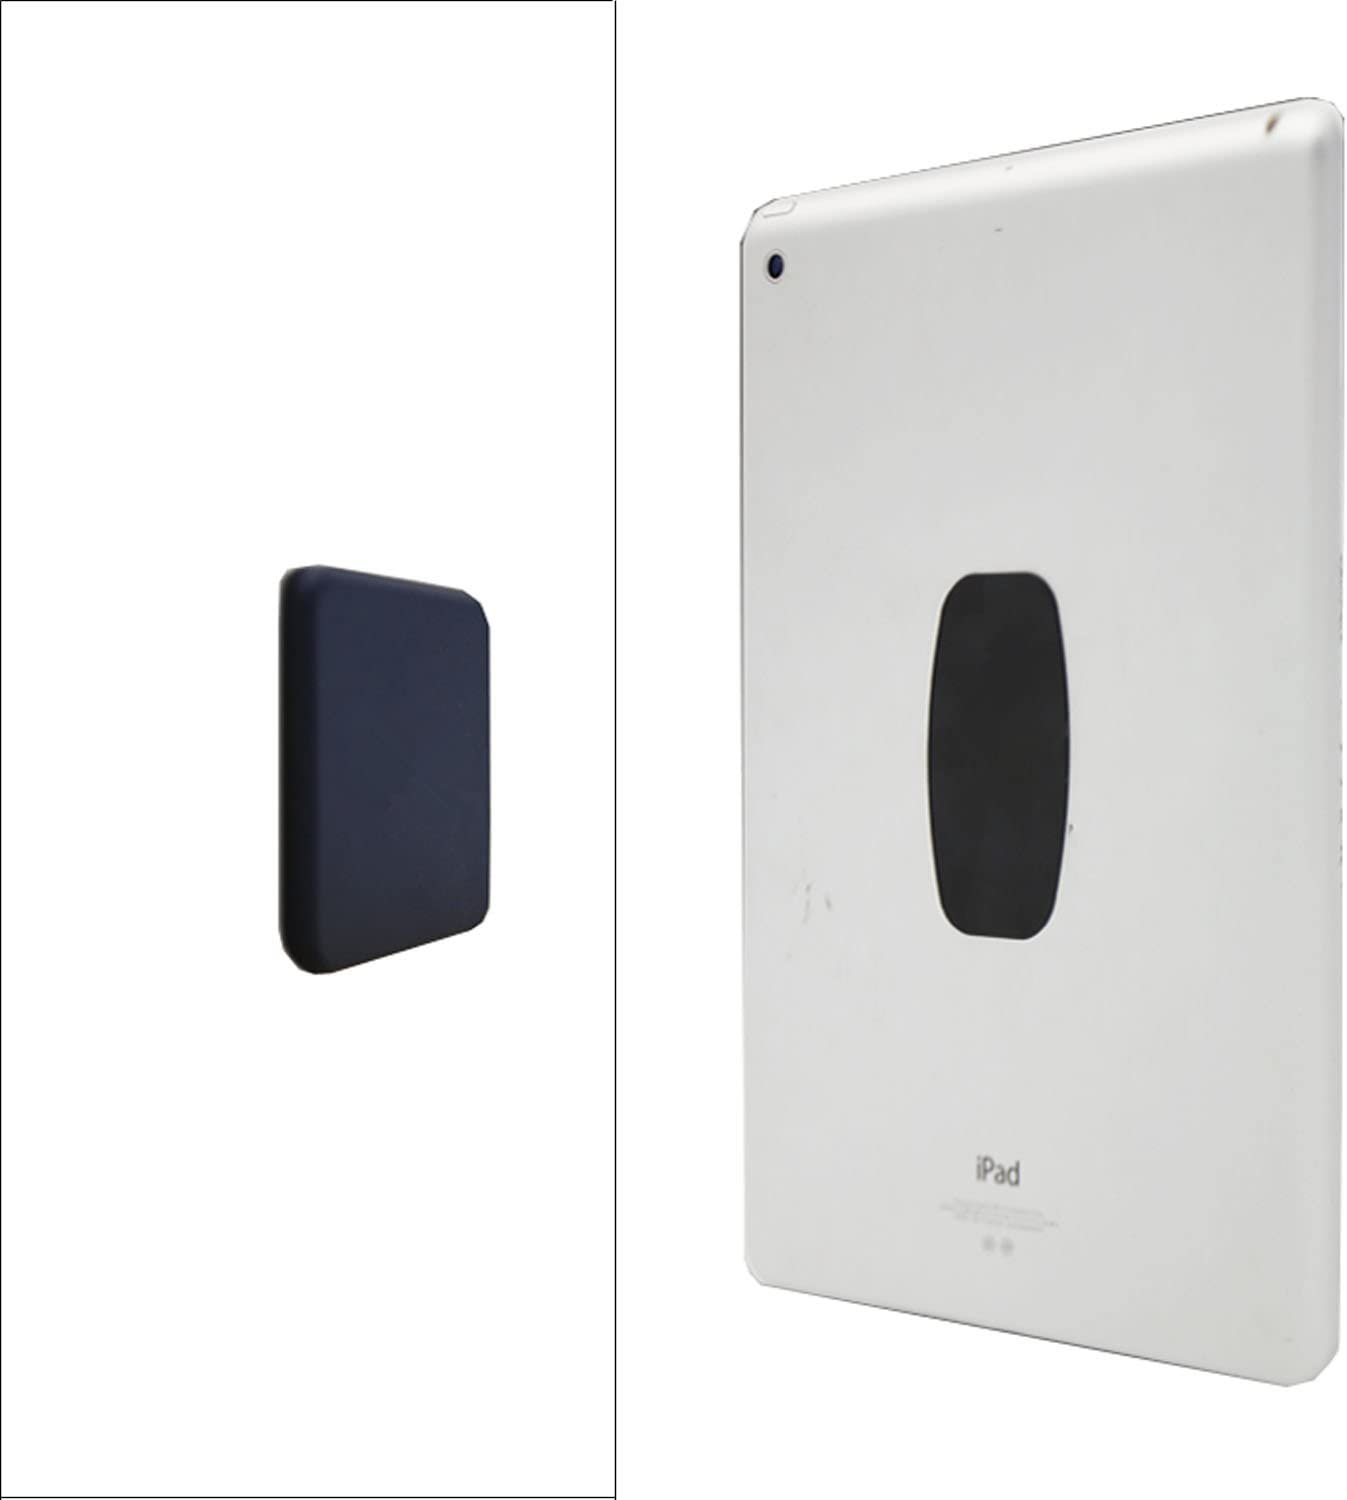 AiTrust Wall Mount Tablet Magnetic Stand Magnet Adsorption Principle Convenience to Pick-and-Place Support All Tablets for iPad Pro Air